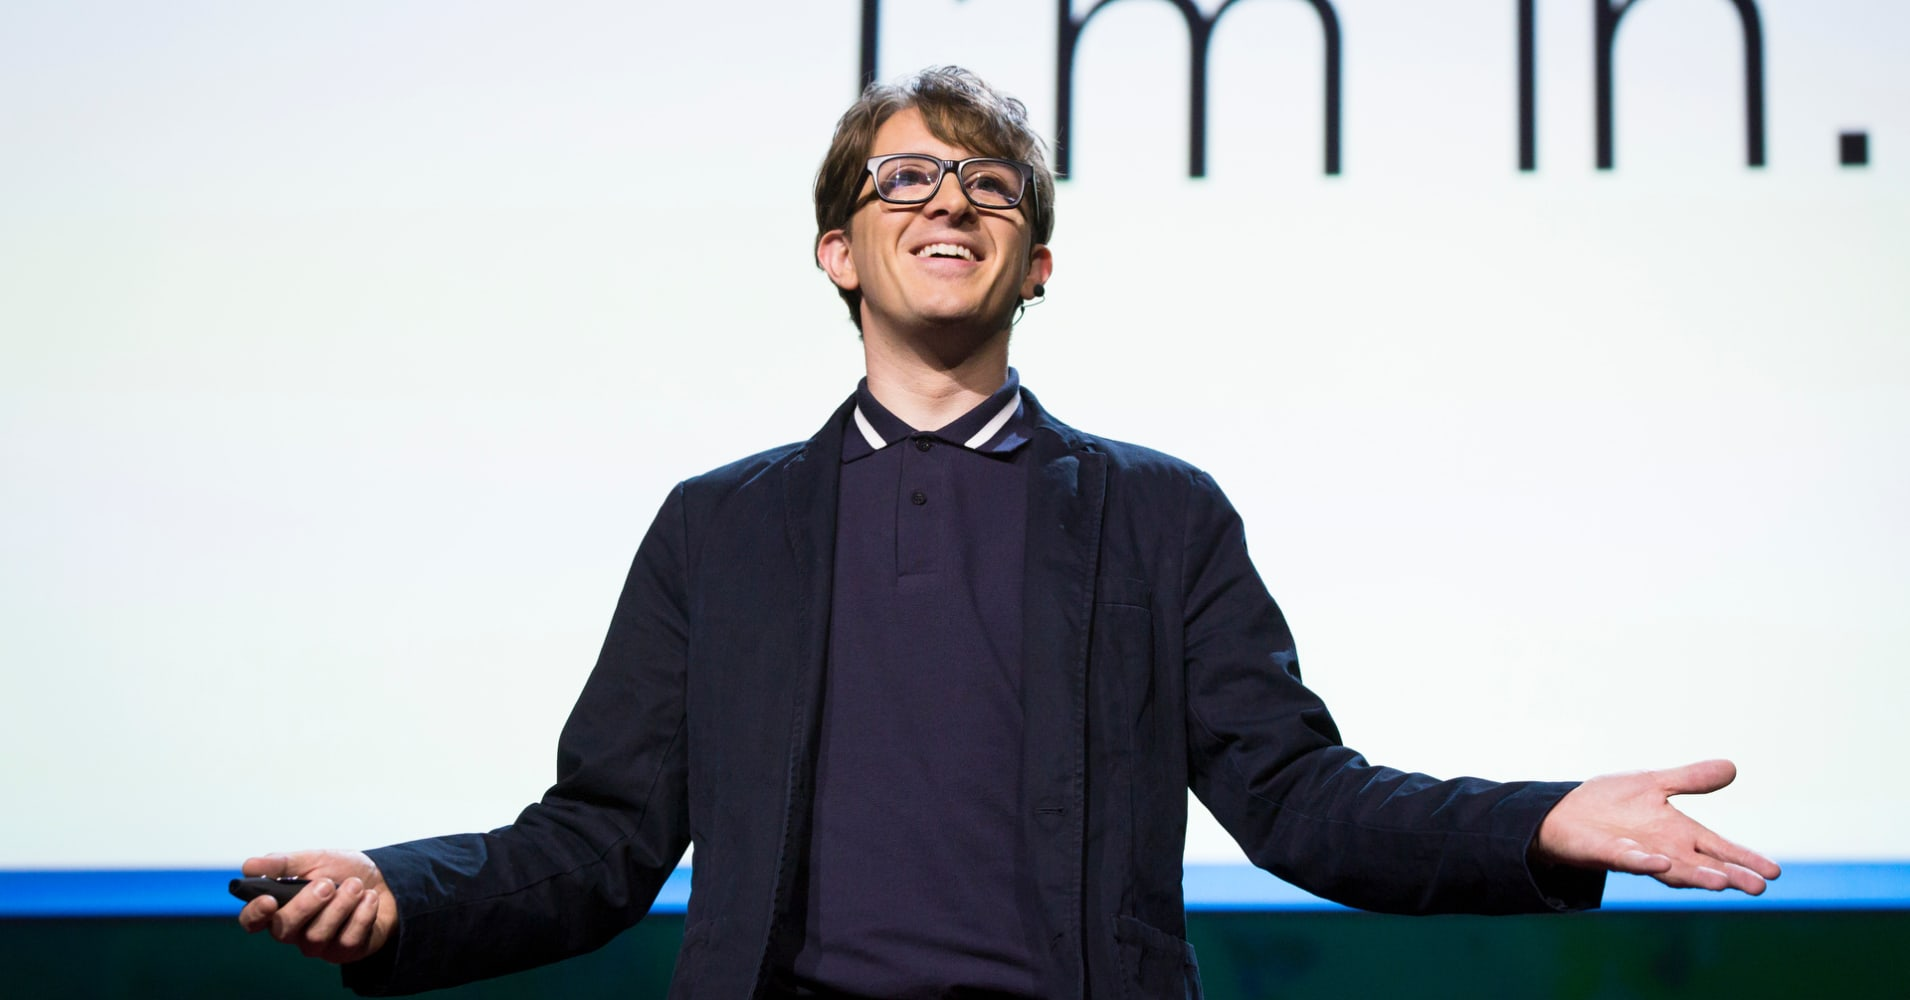 James Veitch at TEDSummit2016 in Banff, Canada.